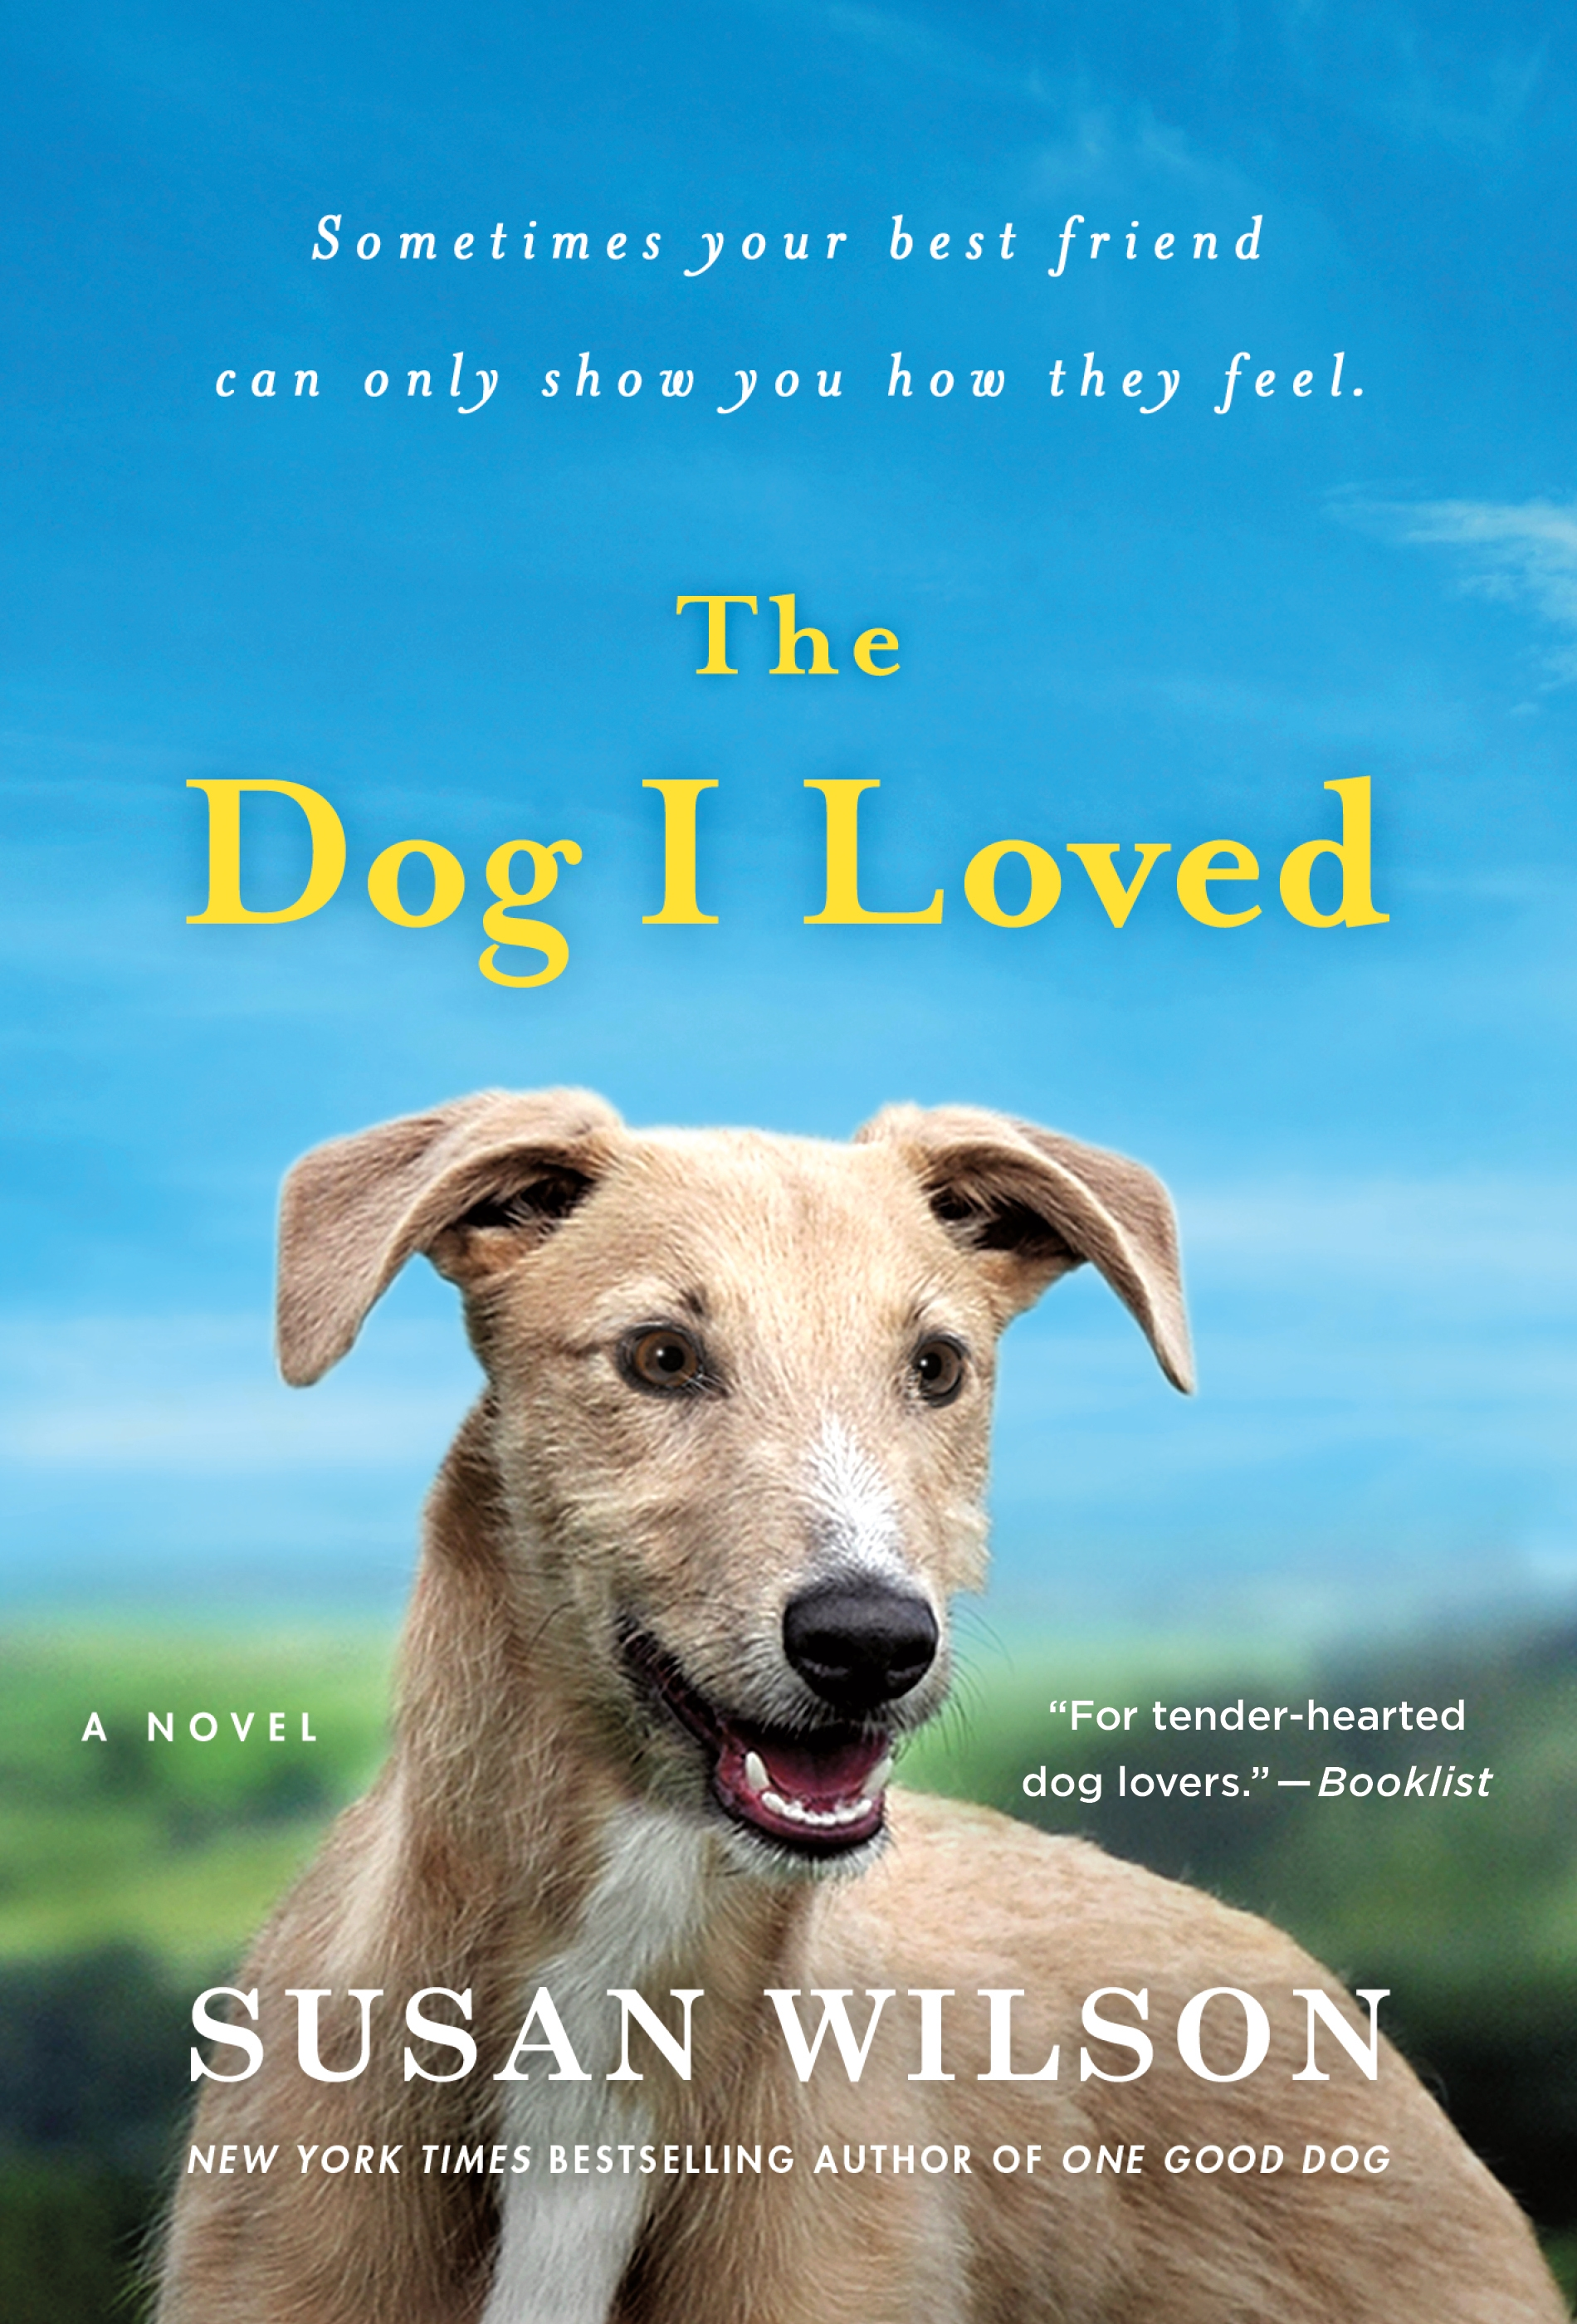 The dog I loved cover image